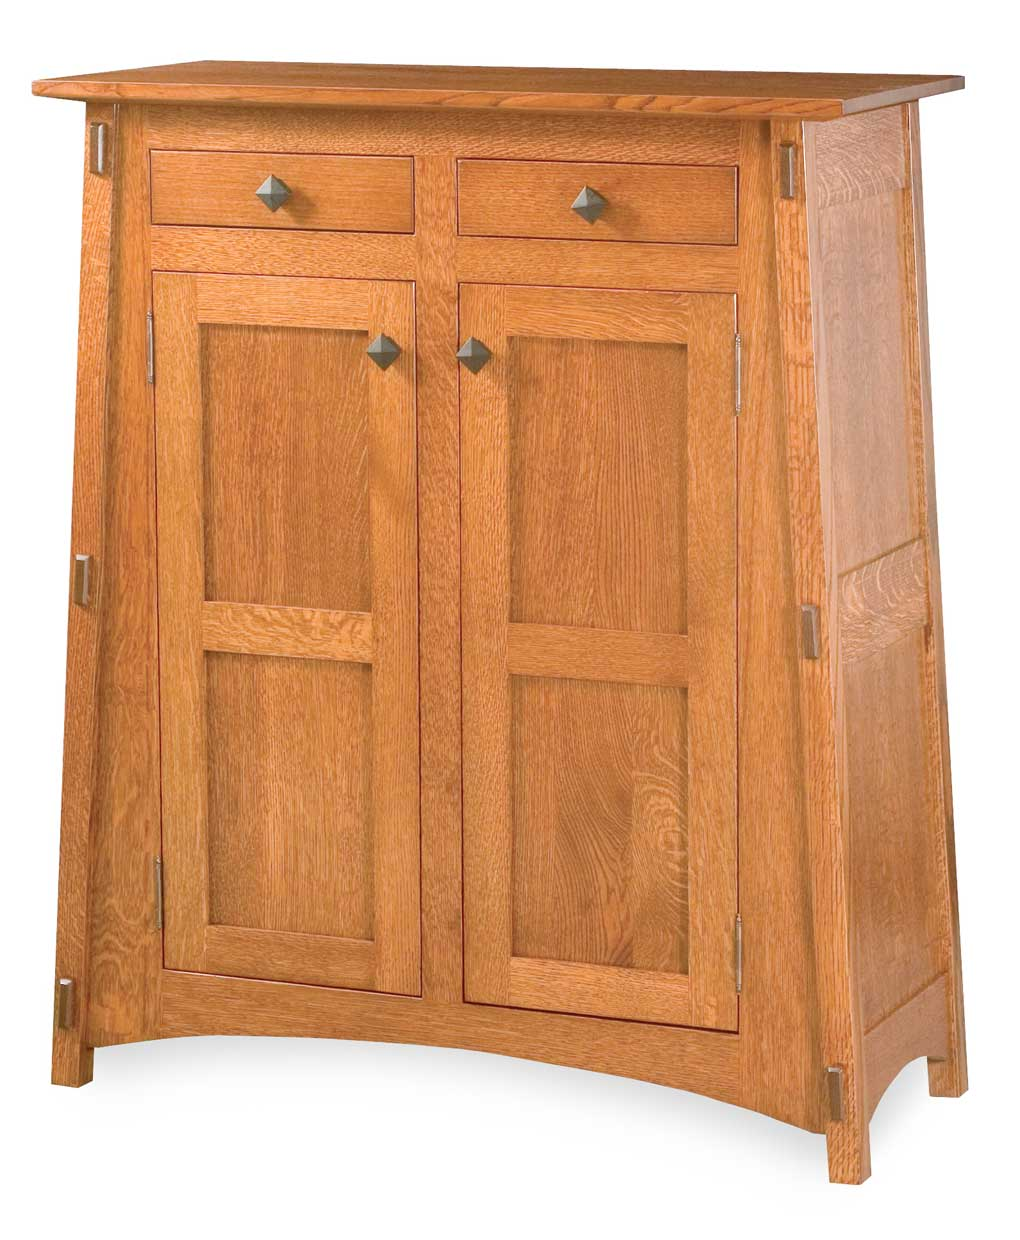 ... Mccoys Cabinets By Mccoy Cabinet Amish Direct Furniture ...